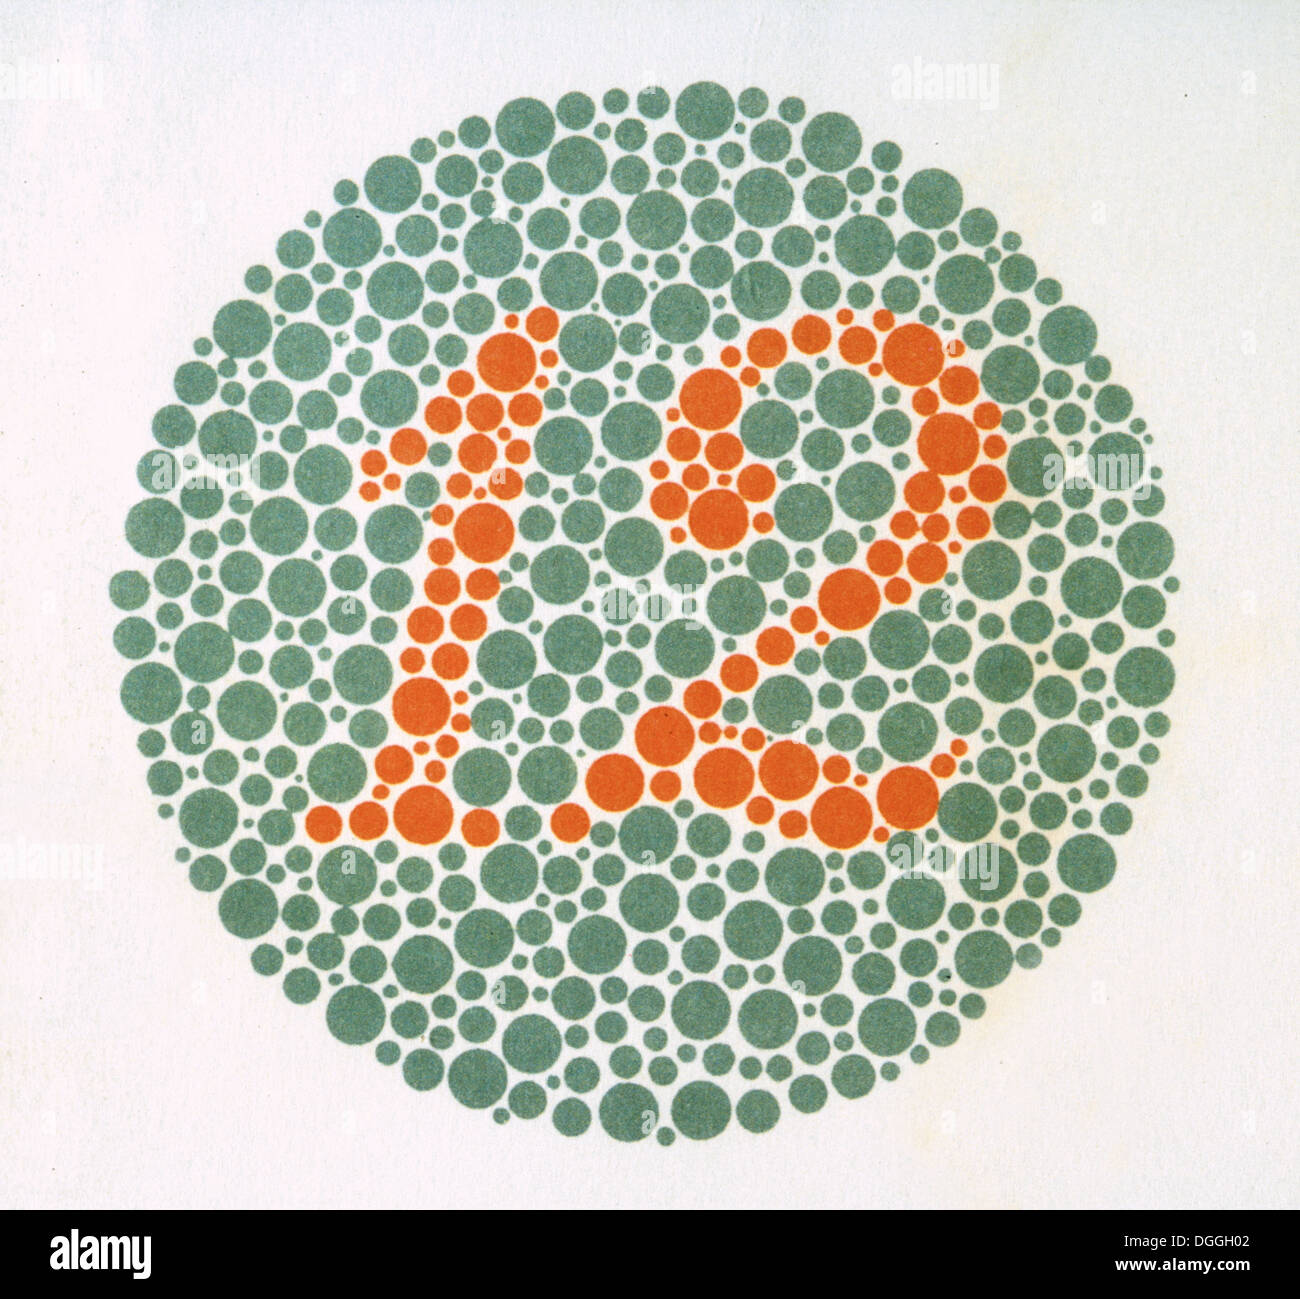 The Ishihara Color Test. Color perception test for red-green color ...